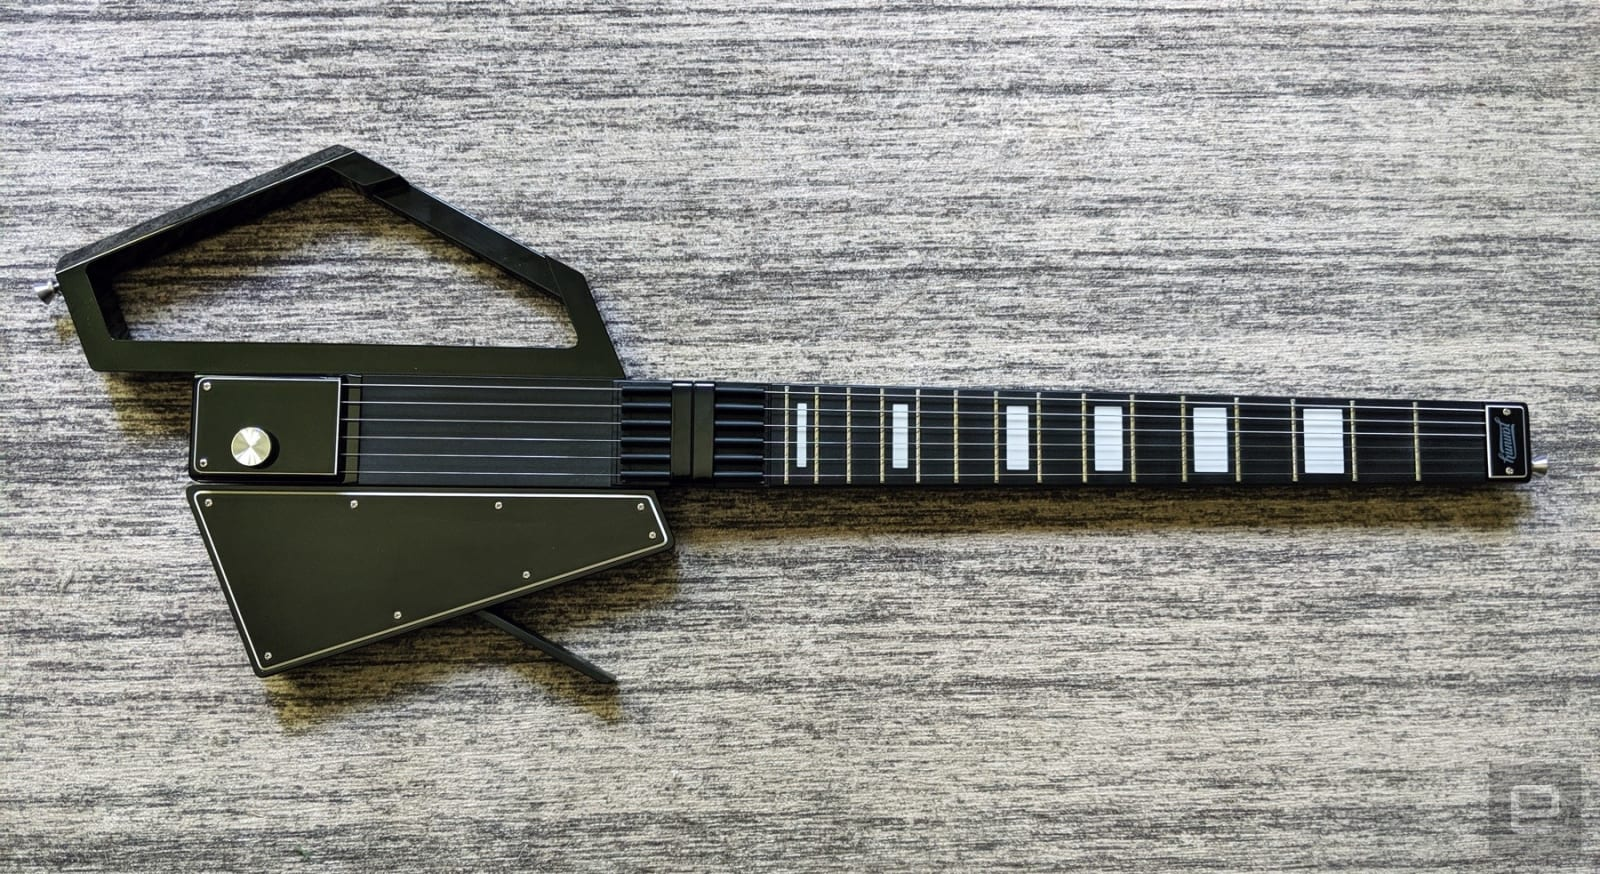 Jammy's digital guitar is a futuristic idea let down by